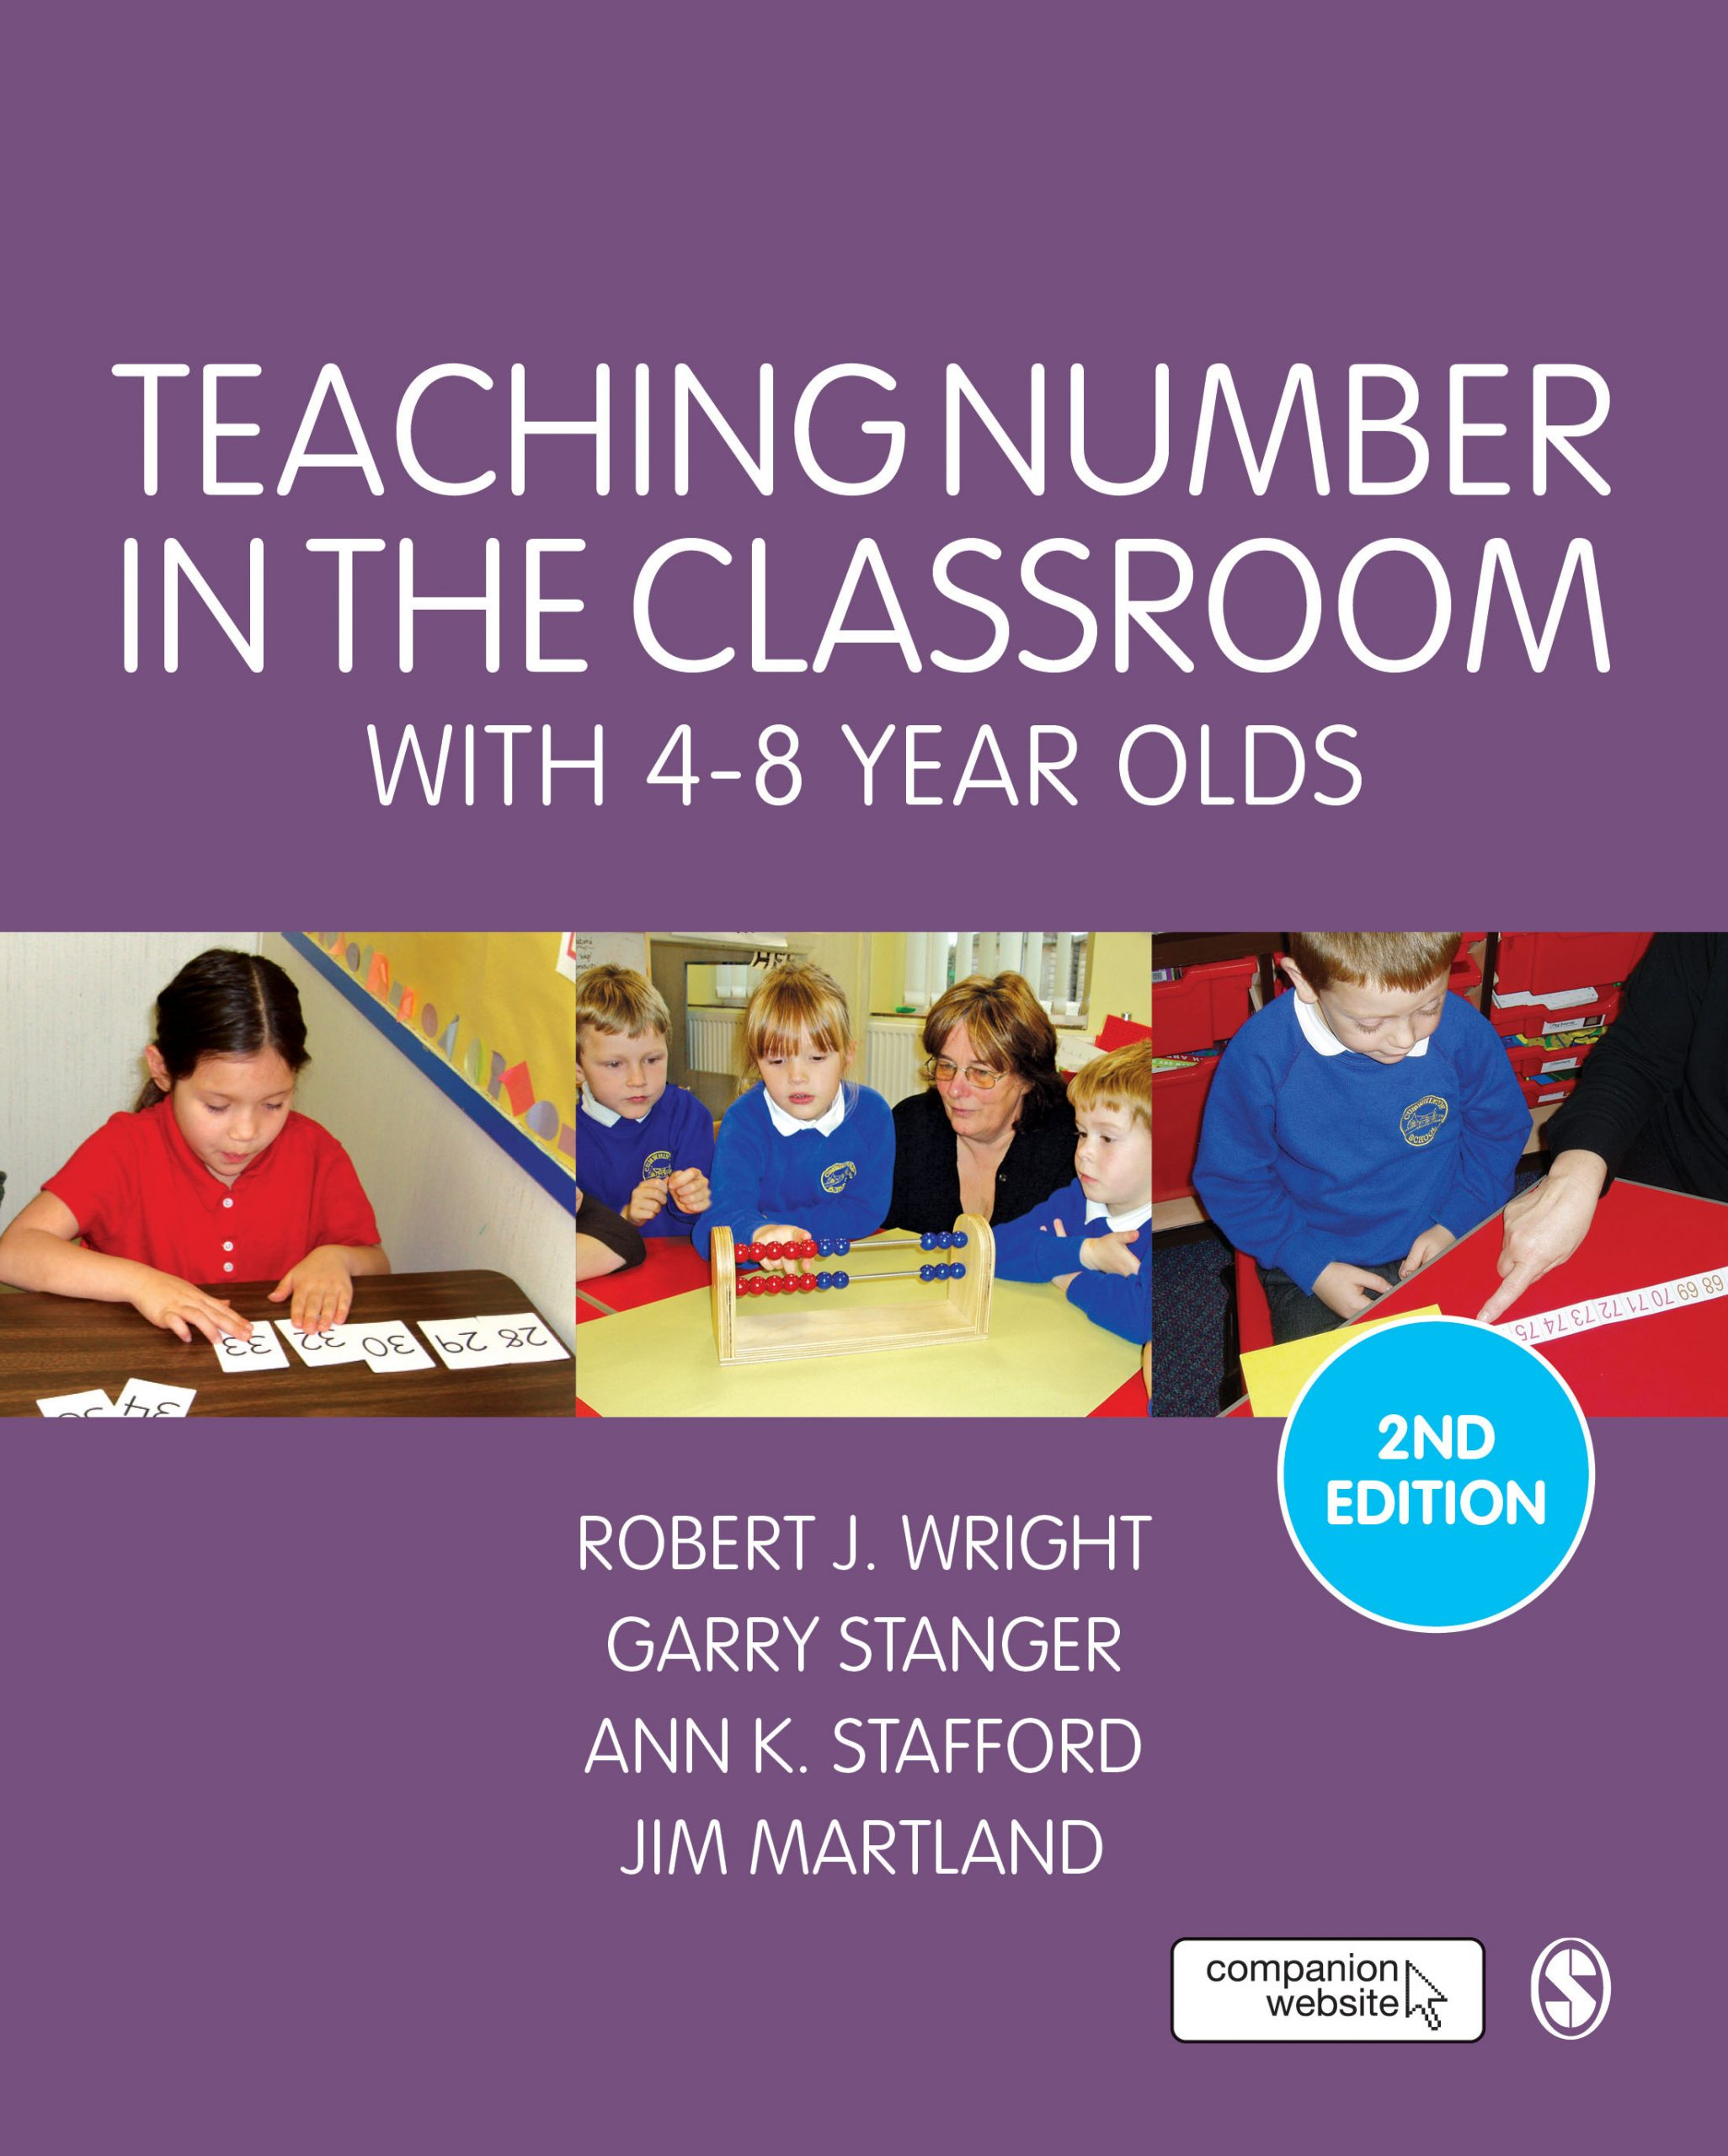 Teaching Number in the Classroom with 4-8yr olds